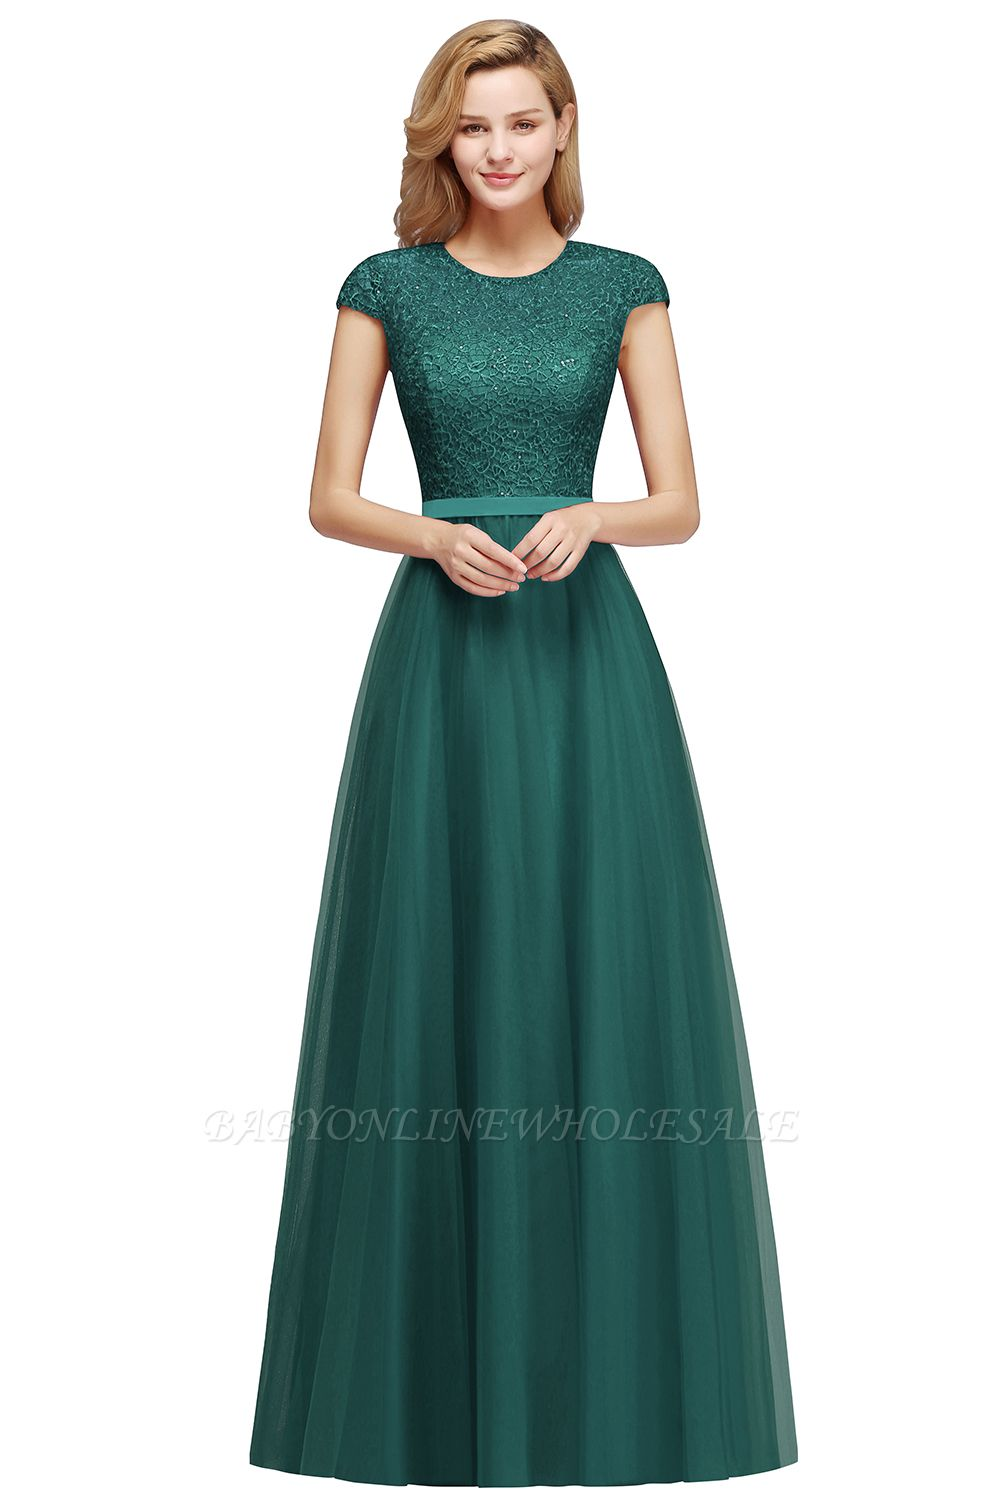 Elegant Lace Top Cap Sleeves Long Tulle Bridesmaid Dresses